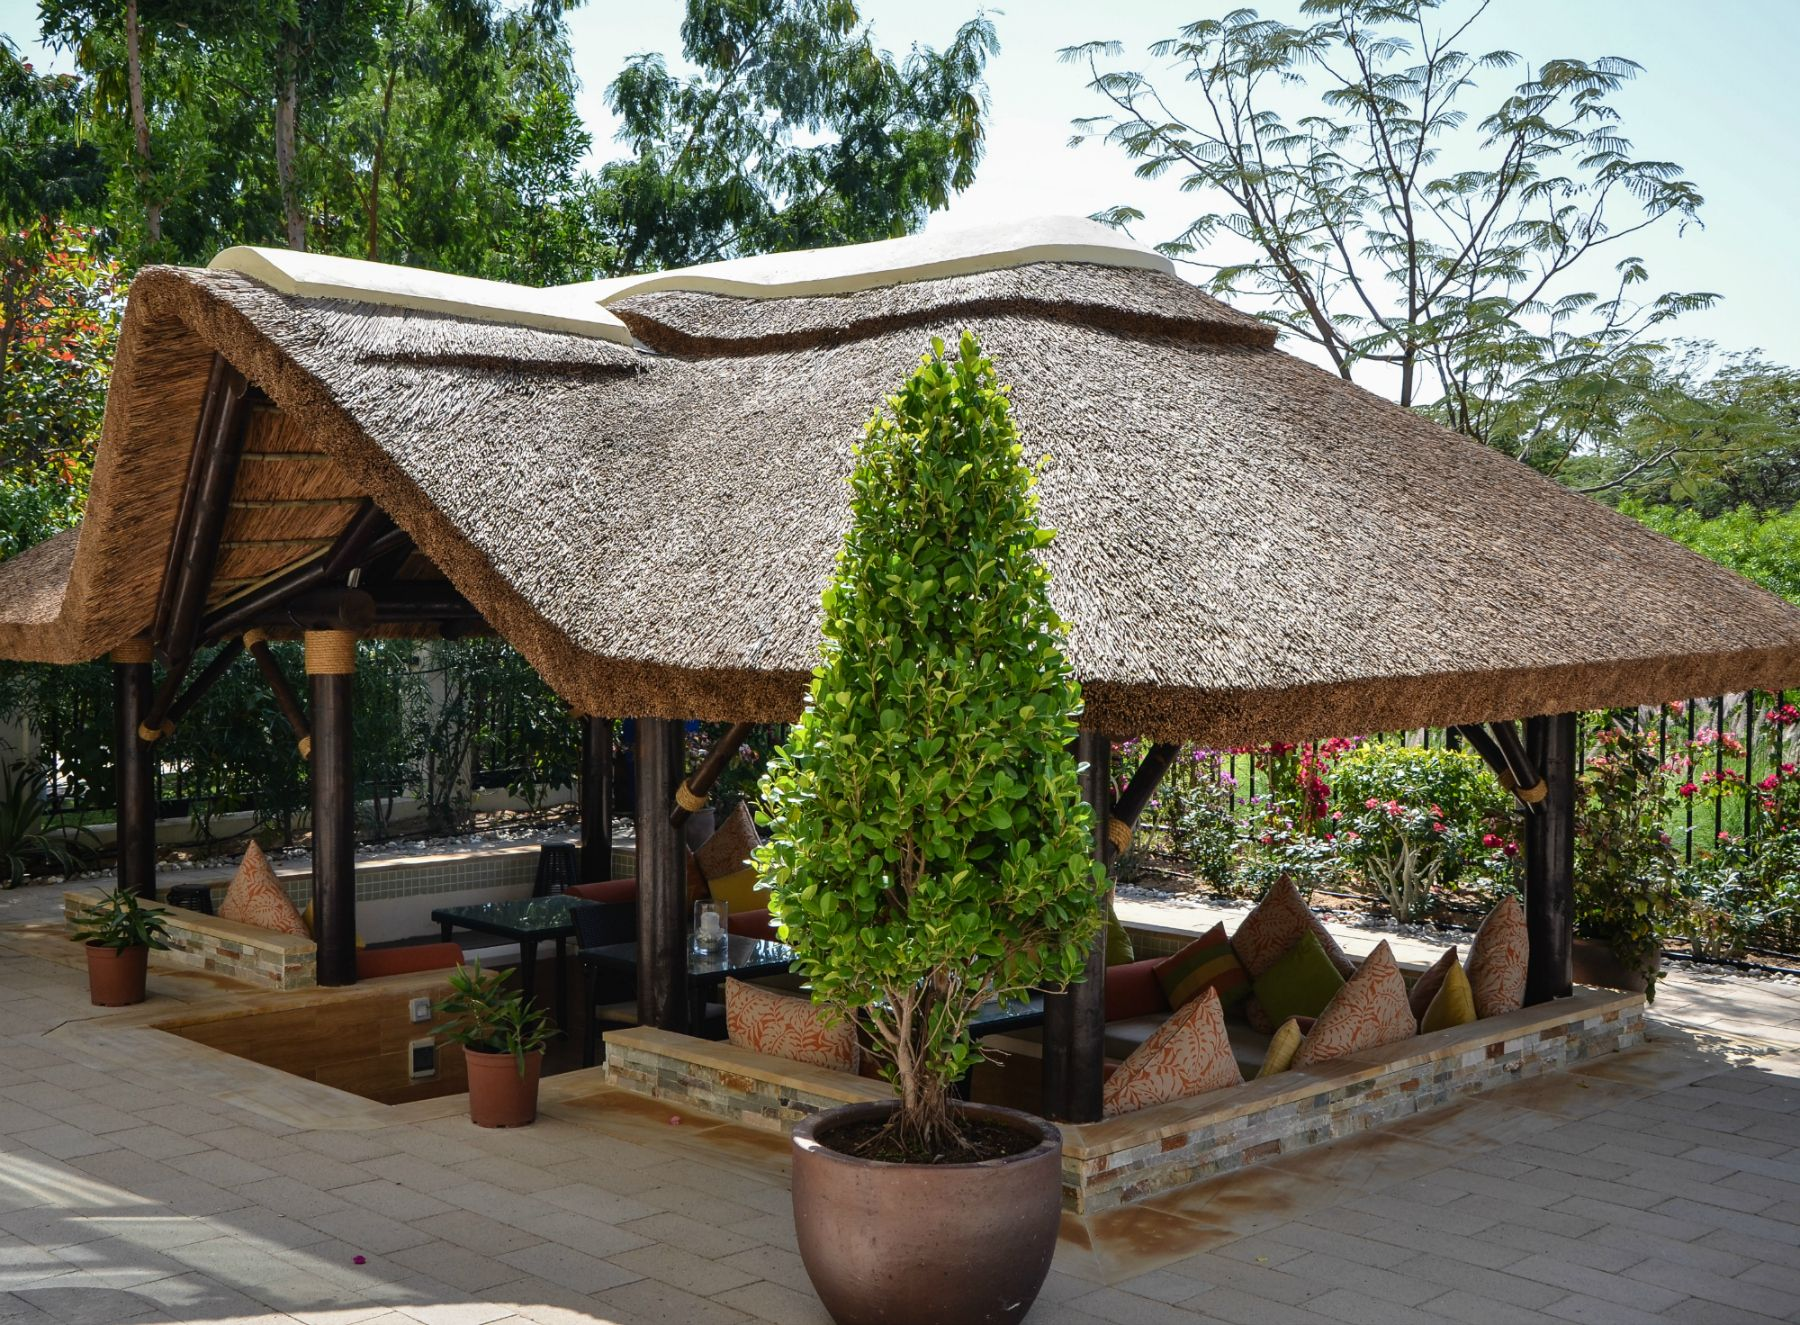 Merveilleux Outdoor Thatched Gazebo With Seating, Perfect For Al Fresco Outdoor Dining!